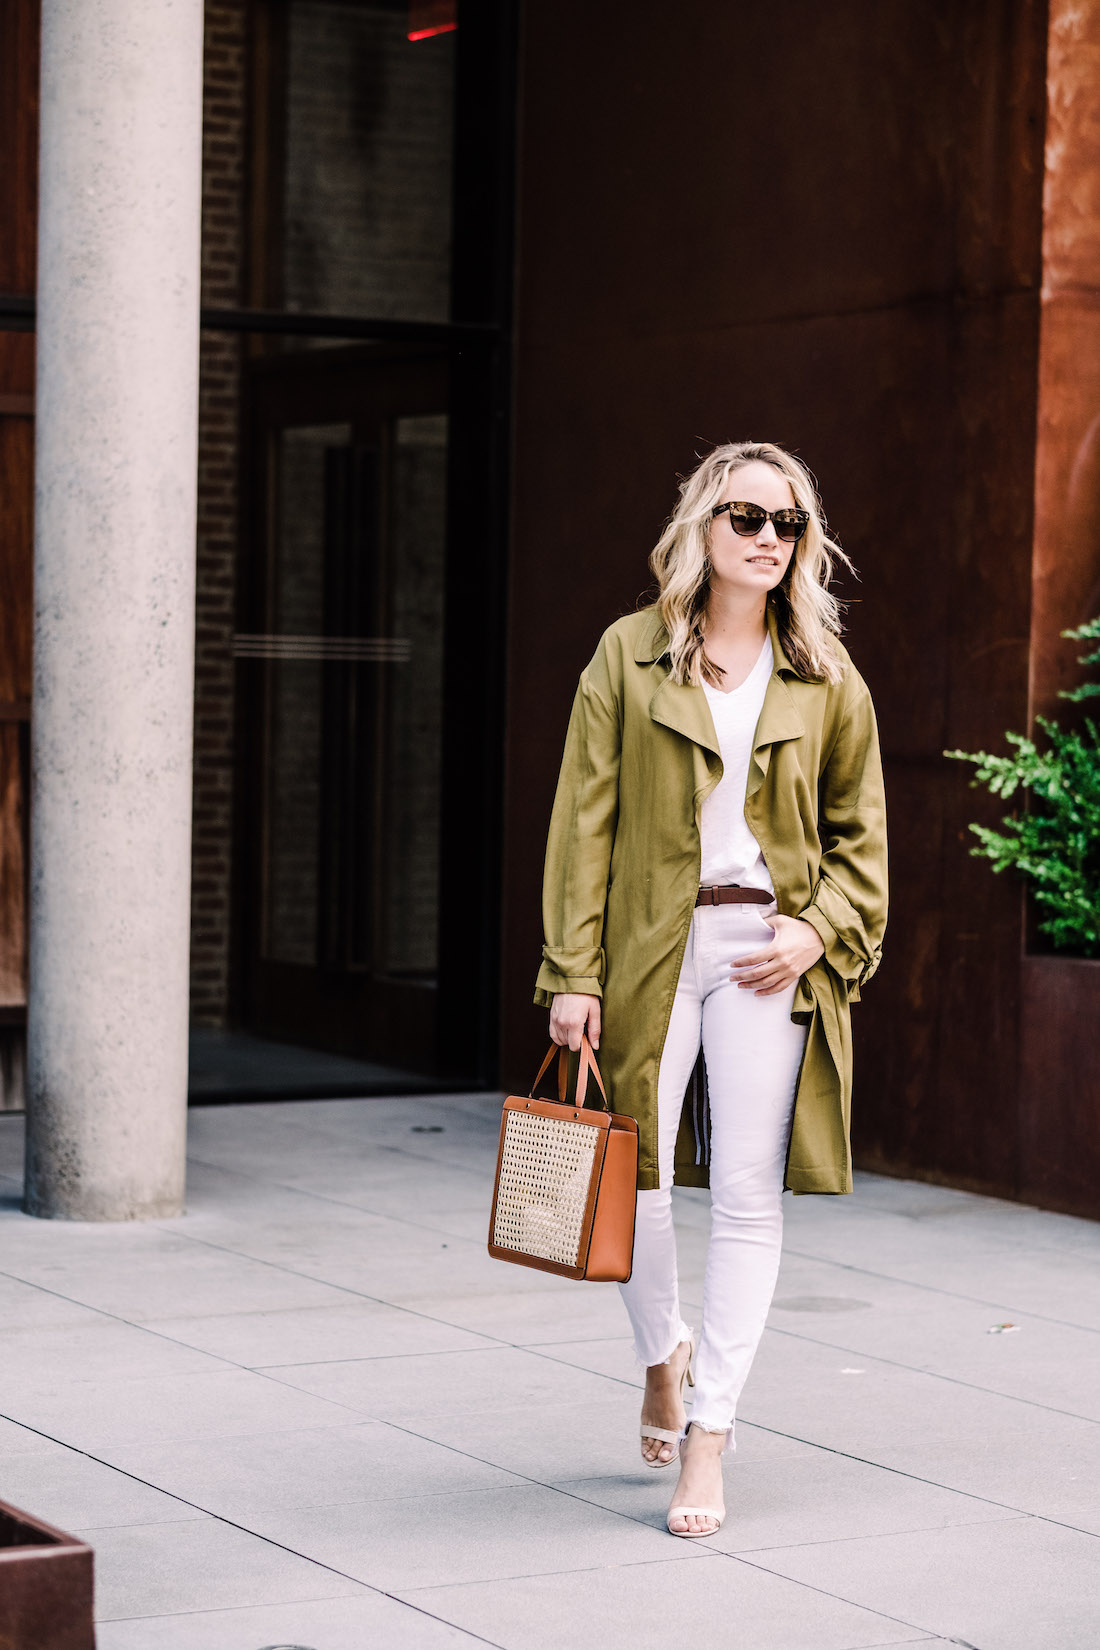 Grace is wearing a Topshop Jacket // Madewell Tee // 7 for All Mankind Jeans // J.Crew Belt // Steve Madden Sandals // Palmgrens Bag  // Polaroid Sunglasses